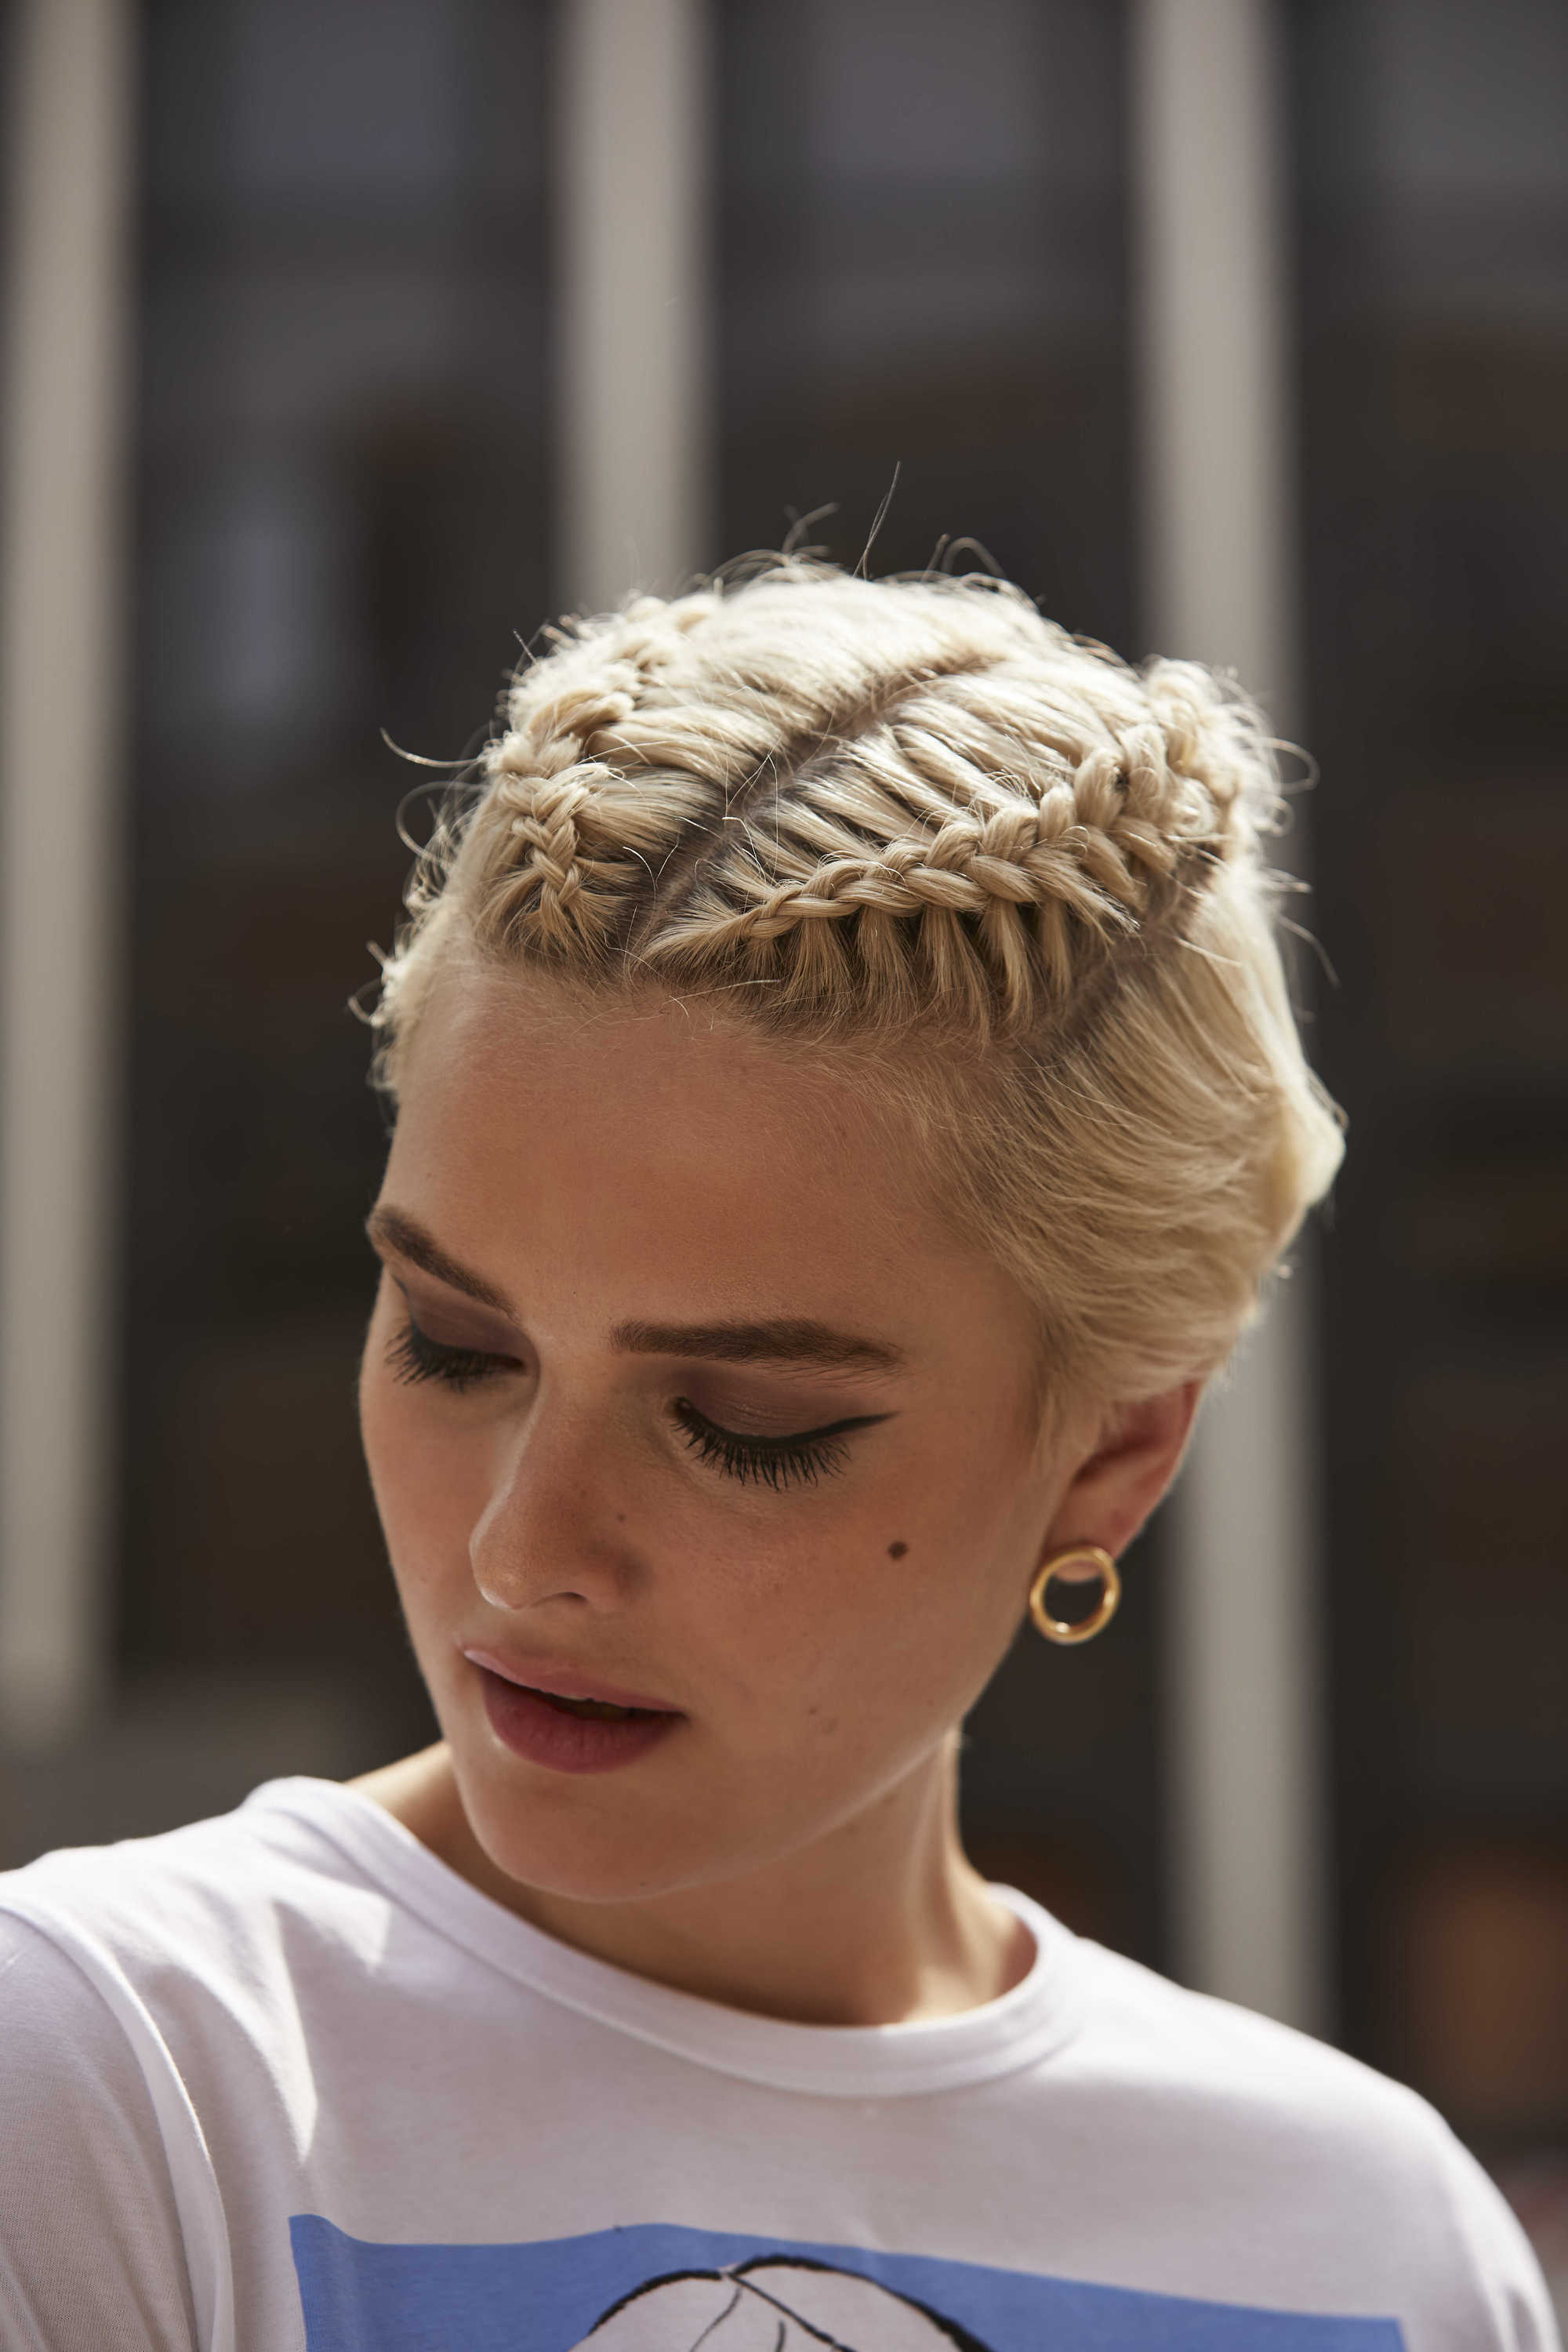 Woman with short blonde hair with mini braids